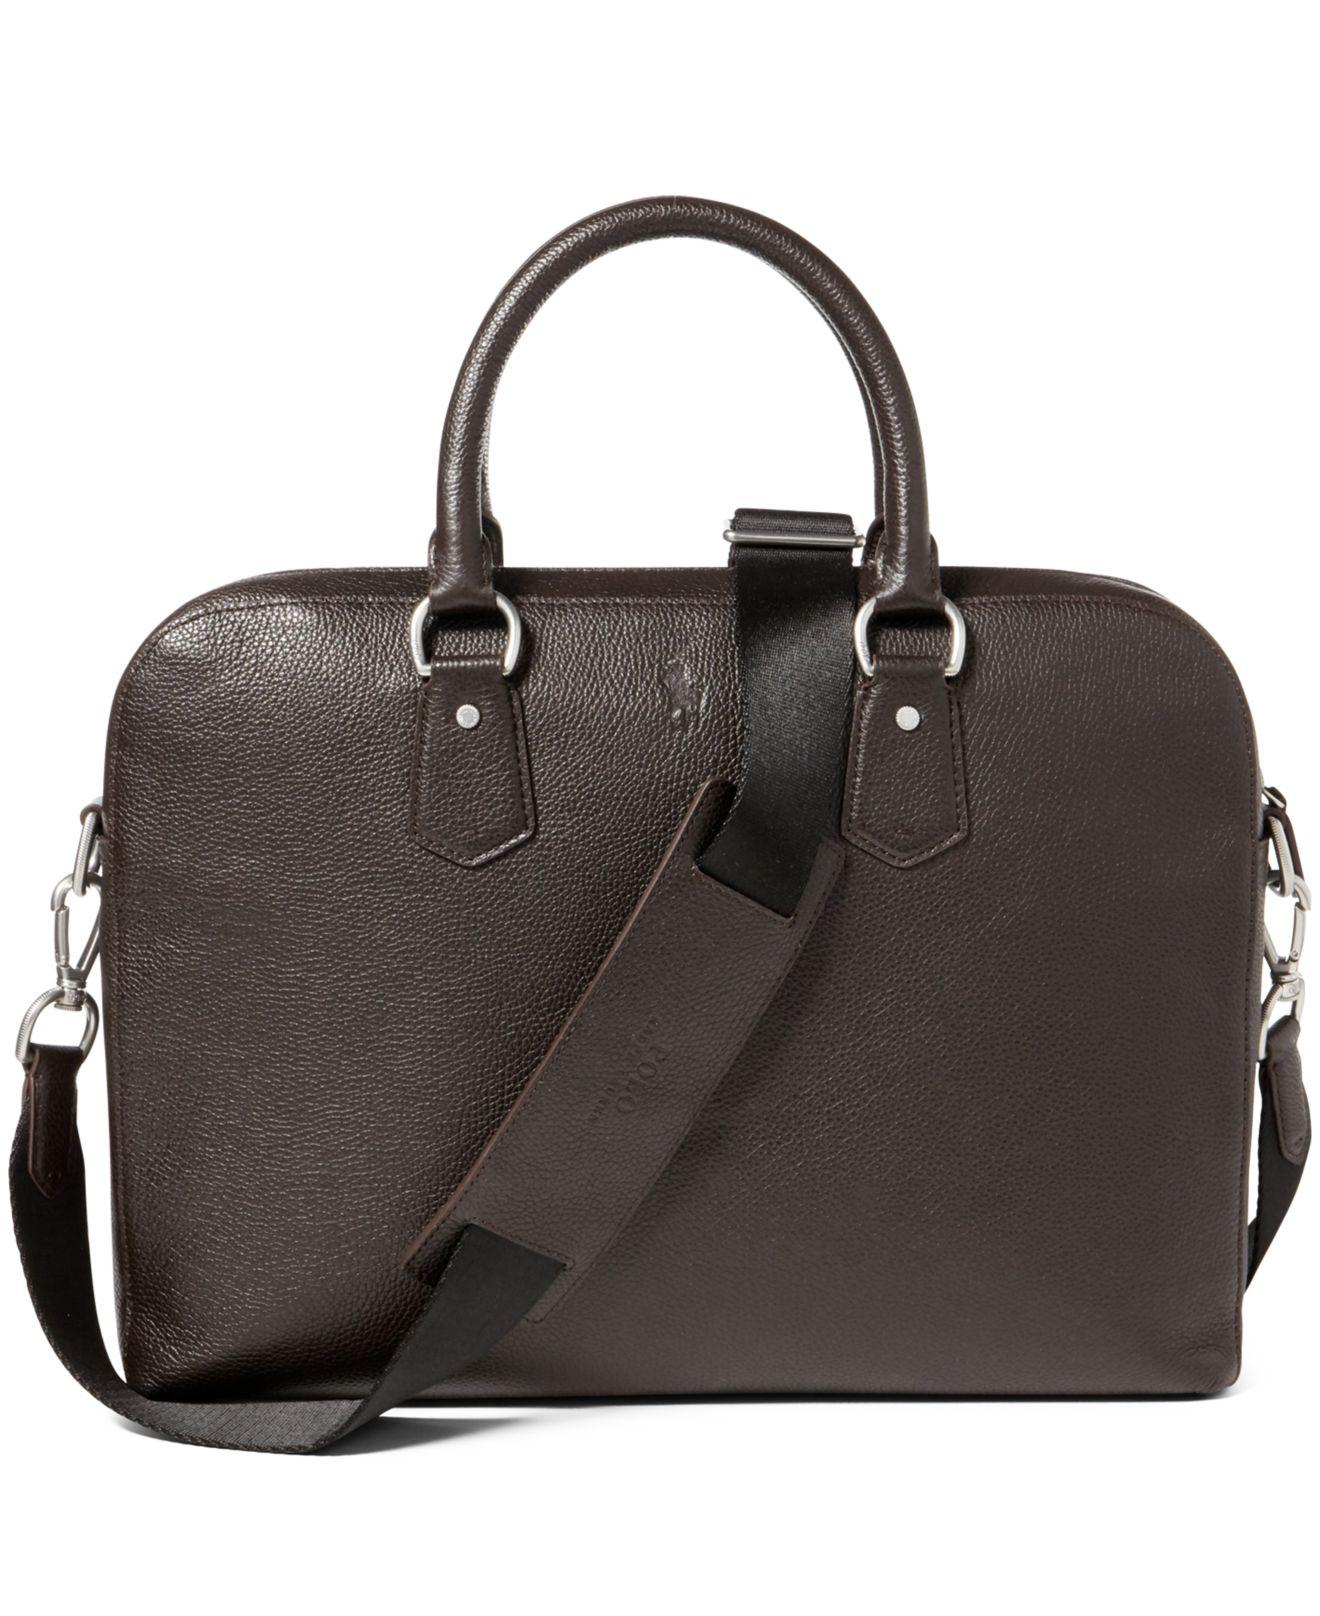 2c52a2f10bc5 Lyst - Polo Ralph Lauren Men s Pebbled Leather Briefcase in Brown for Men